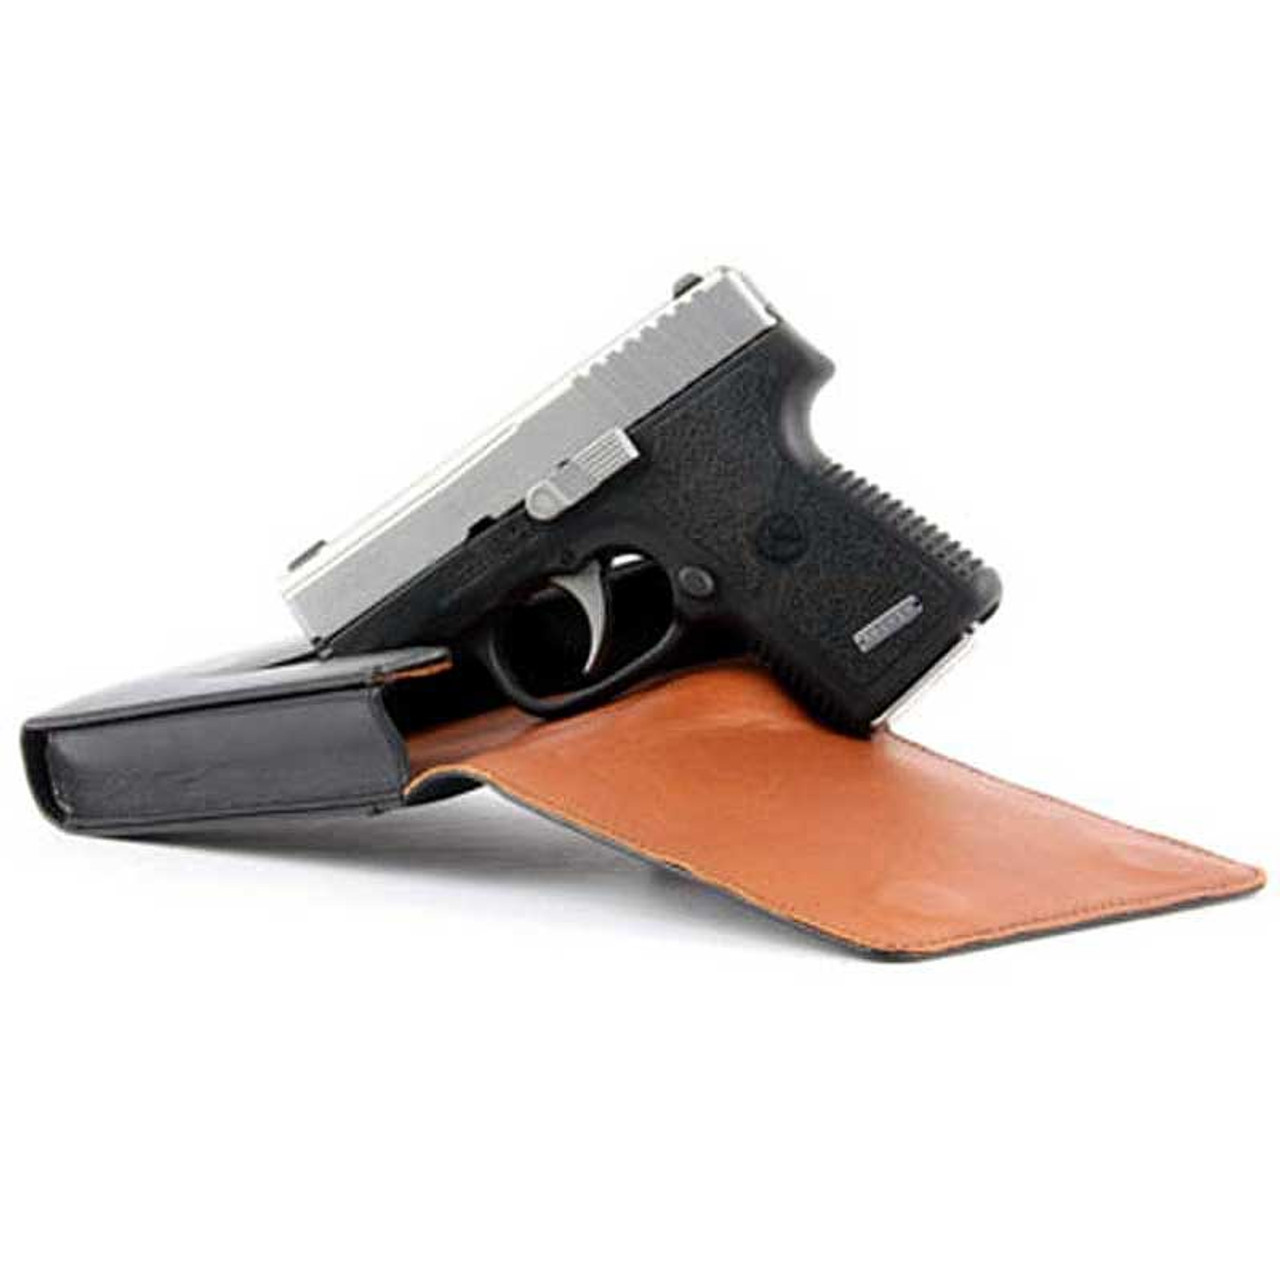 Kahr K40 Concealed Carry Holster (Belt Loop)